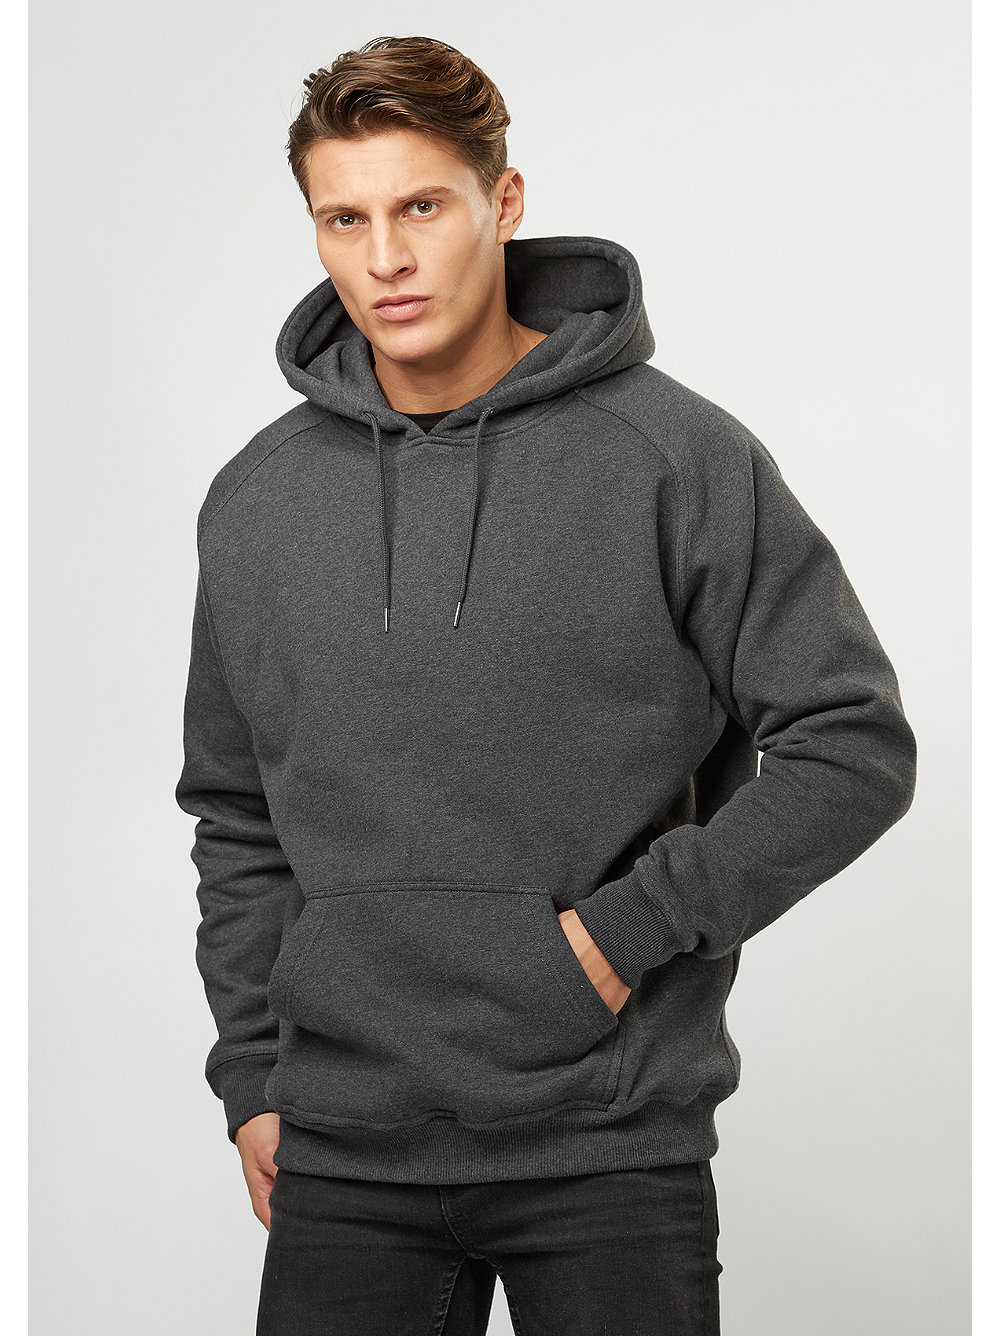 urban classics hooded sweatshirt blank charcoal snipes. Black Bedroom Furniture Sets. Home Design Ideas